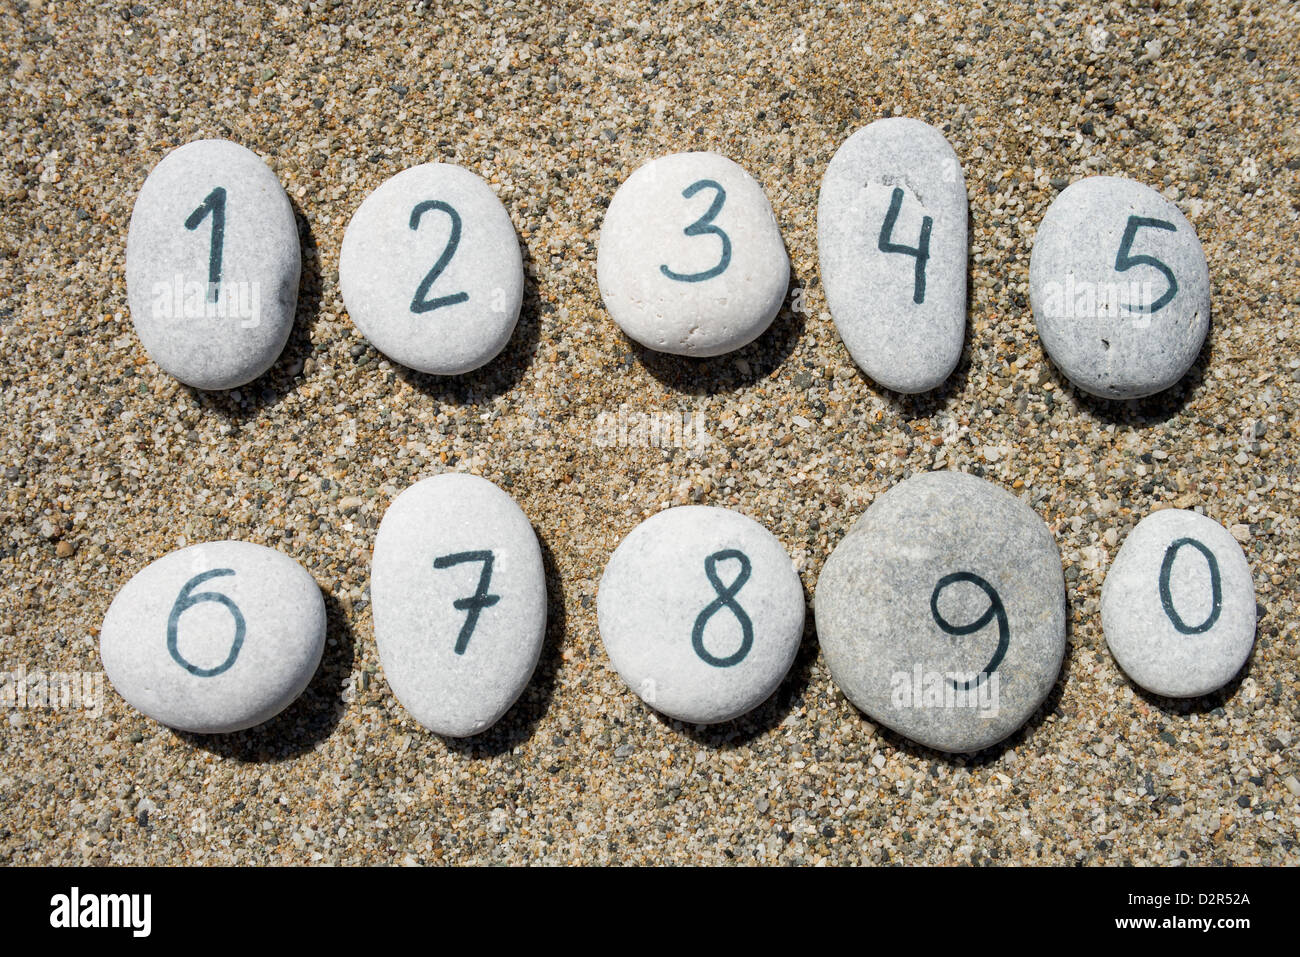 0 to 9 digits on group of stones with sand background - Stock Image